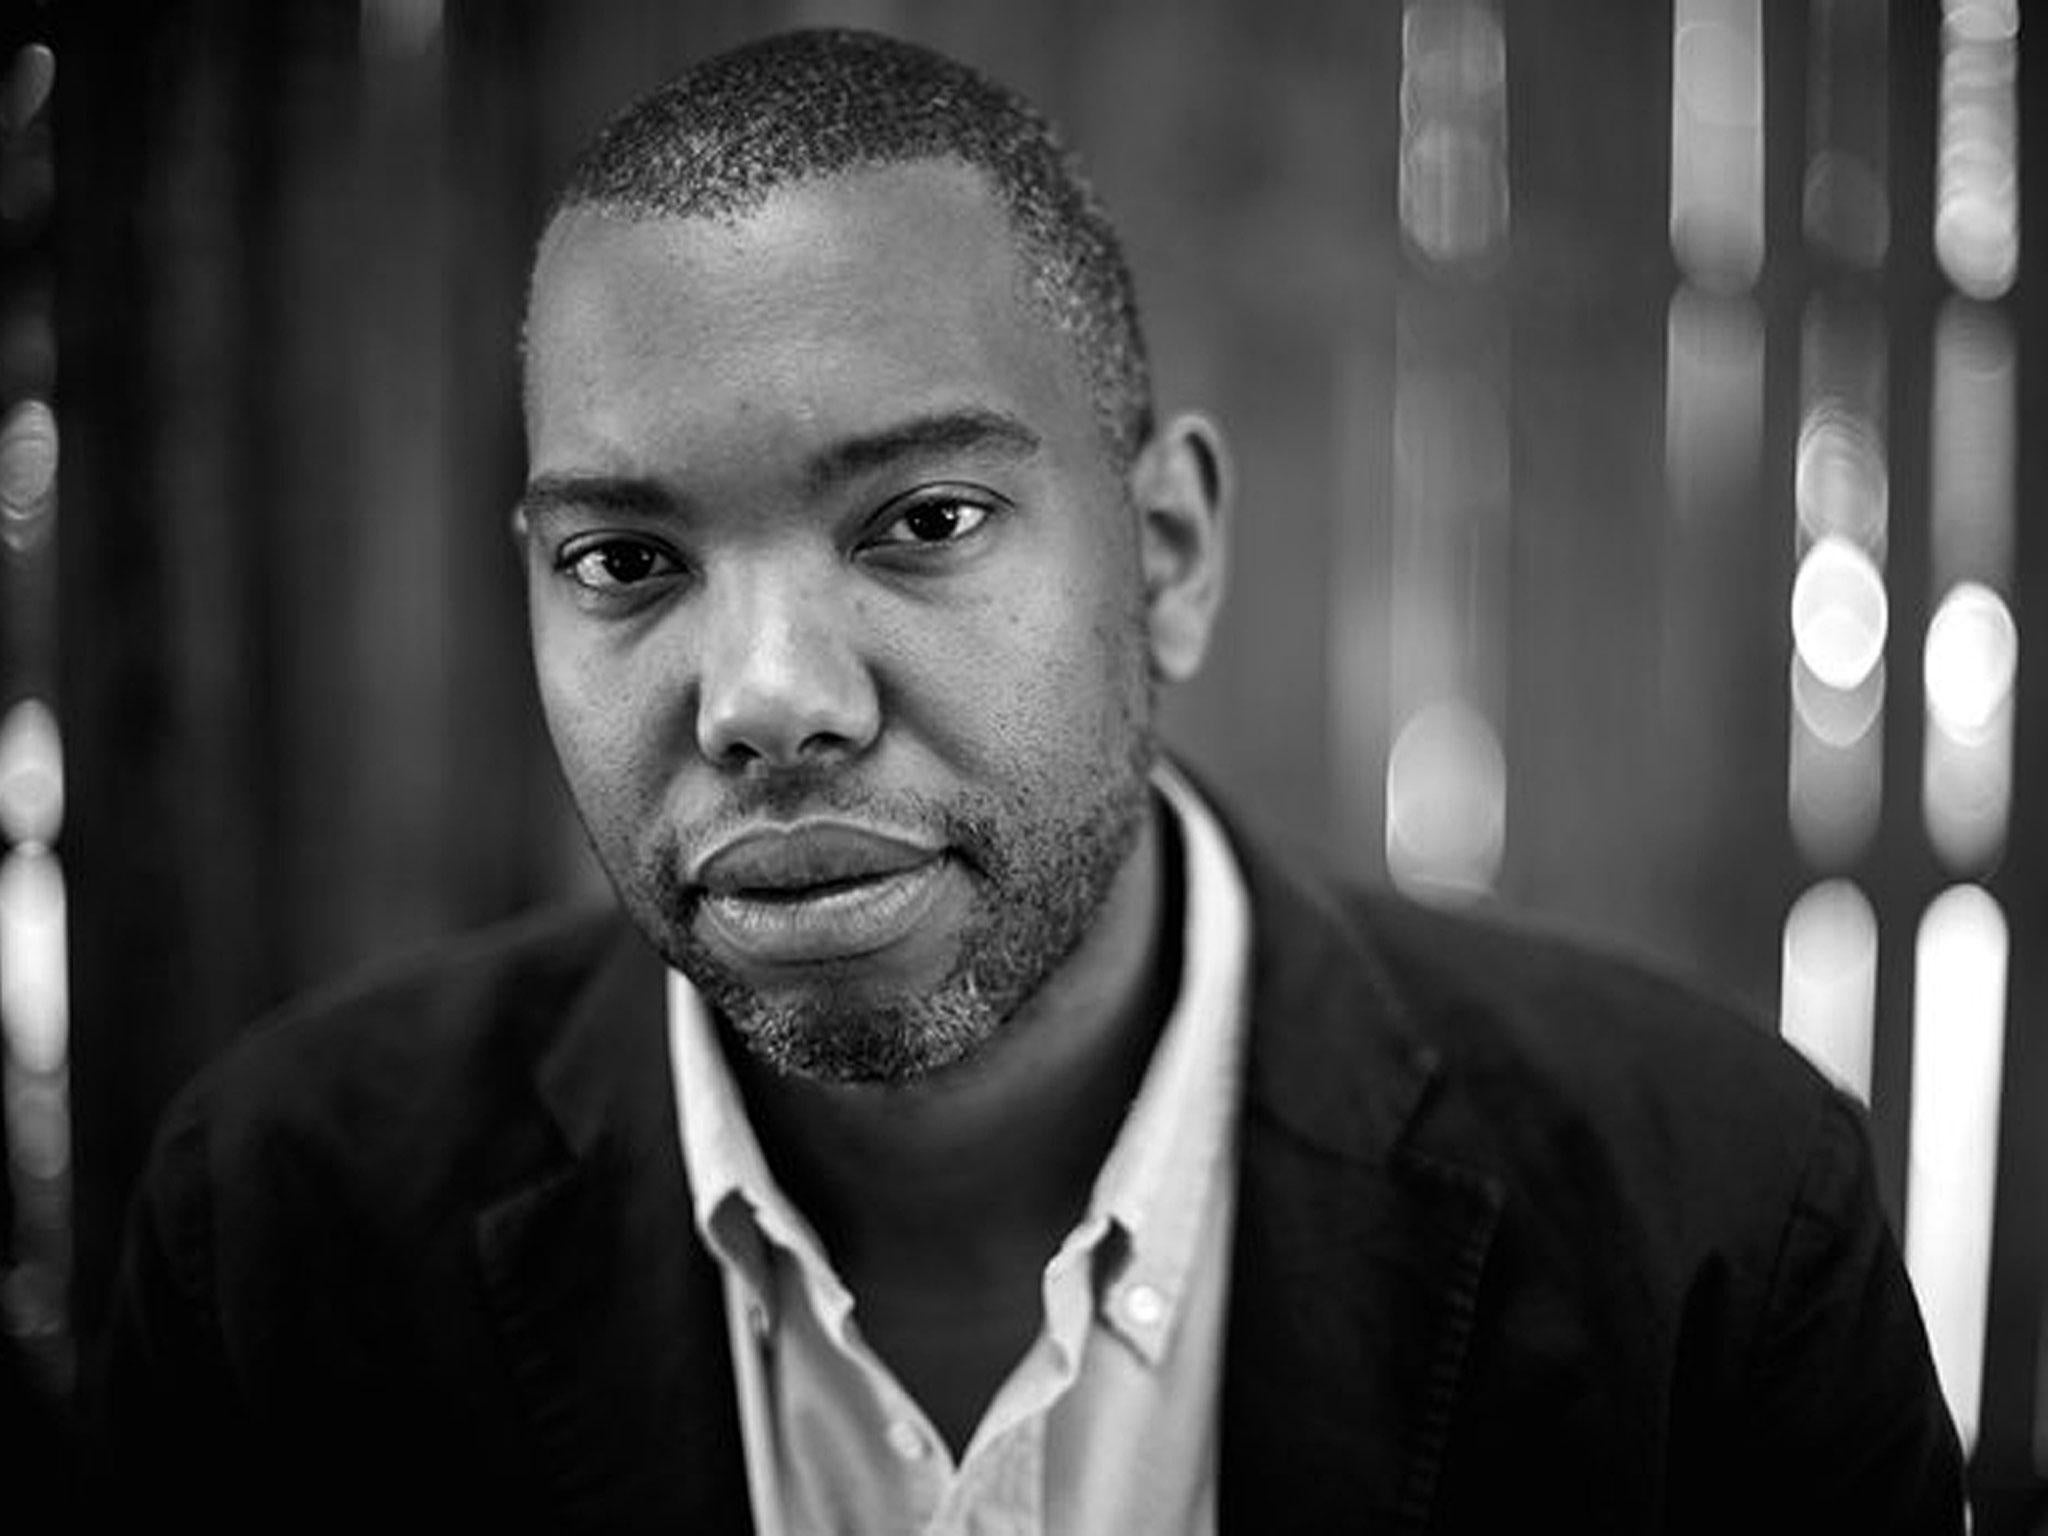 Ta-Nehisi Coates explains why white hip-hop fans shouldn't rap the N-word – and why they still do